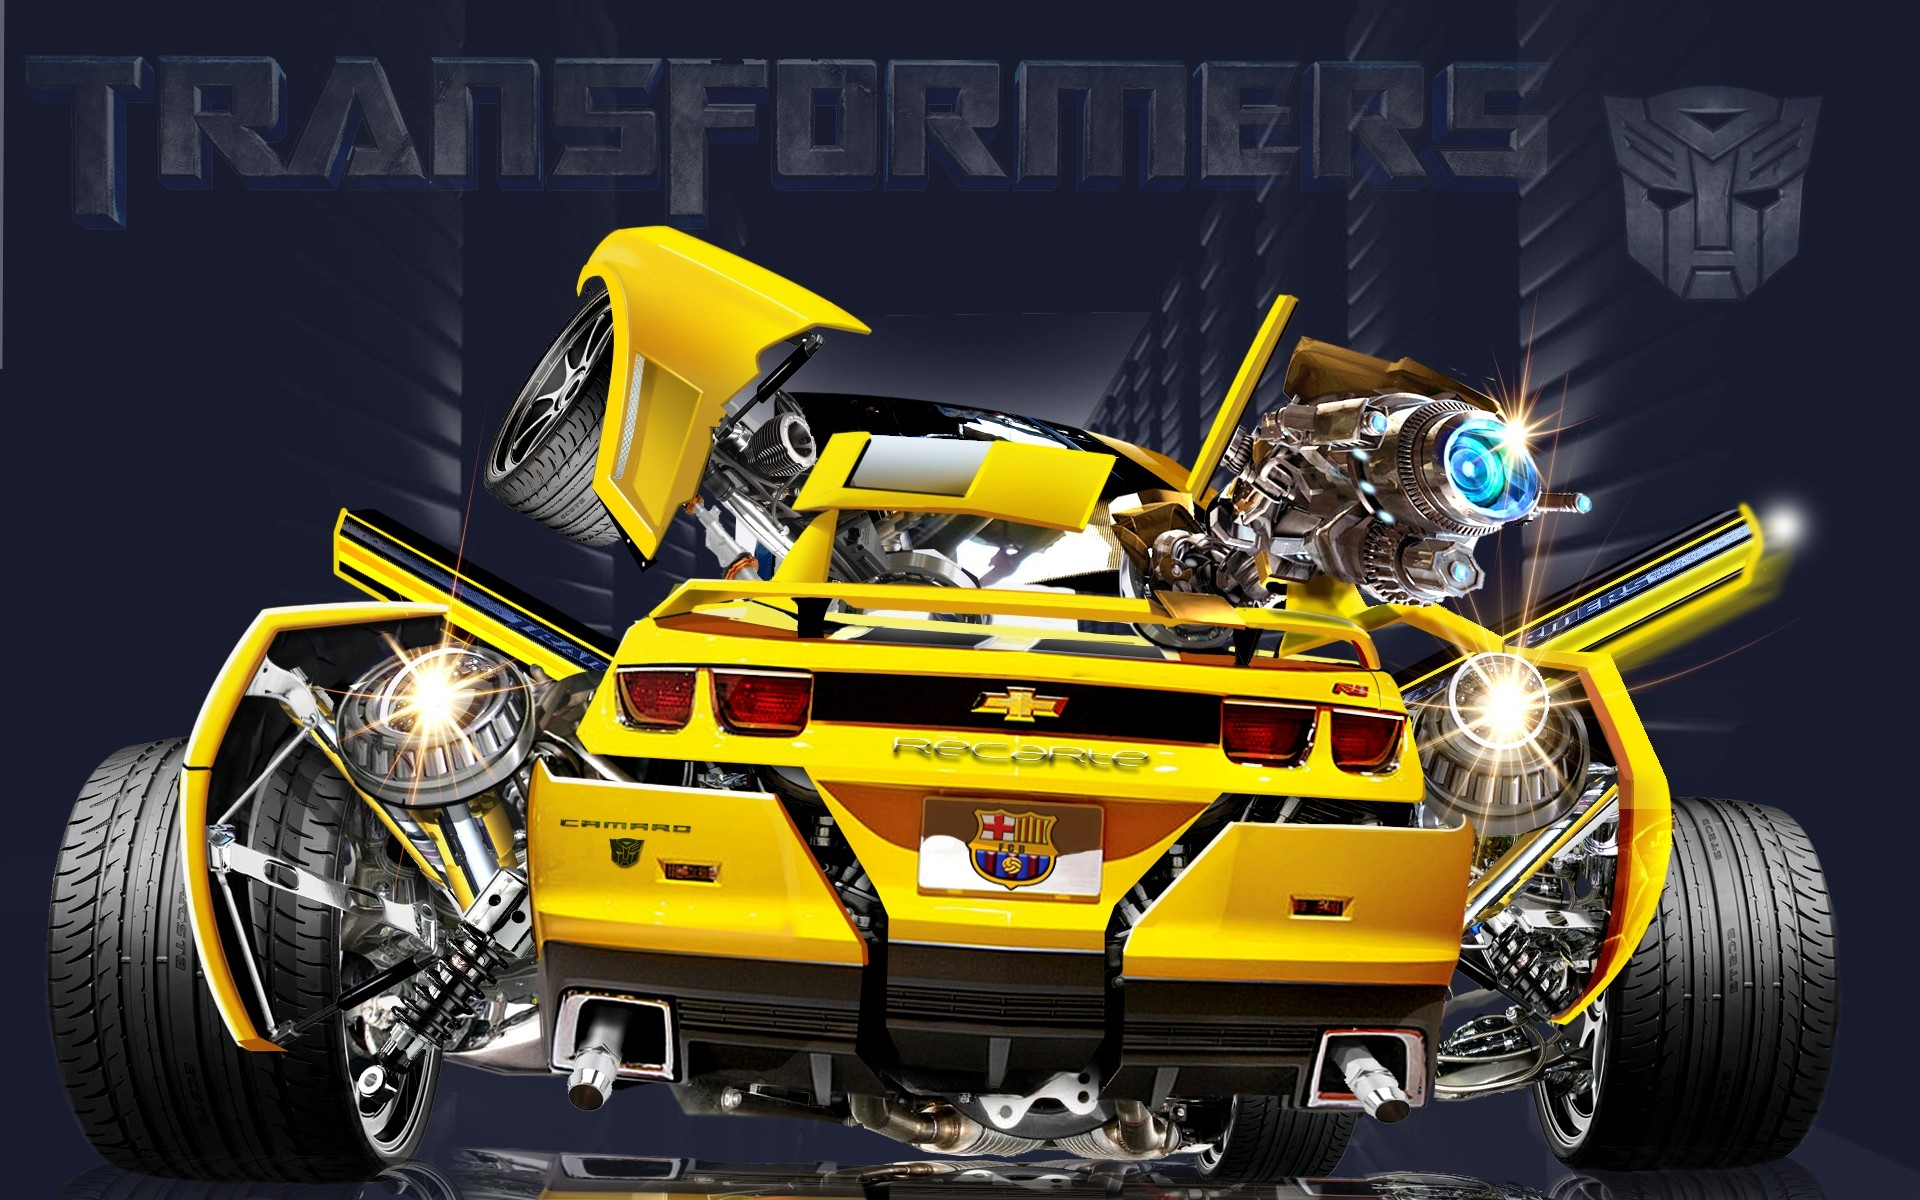 1920x1200 Bumblebee From Transformers Movie wallpaper | It's All a Fantasy .